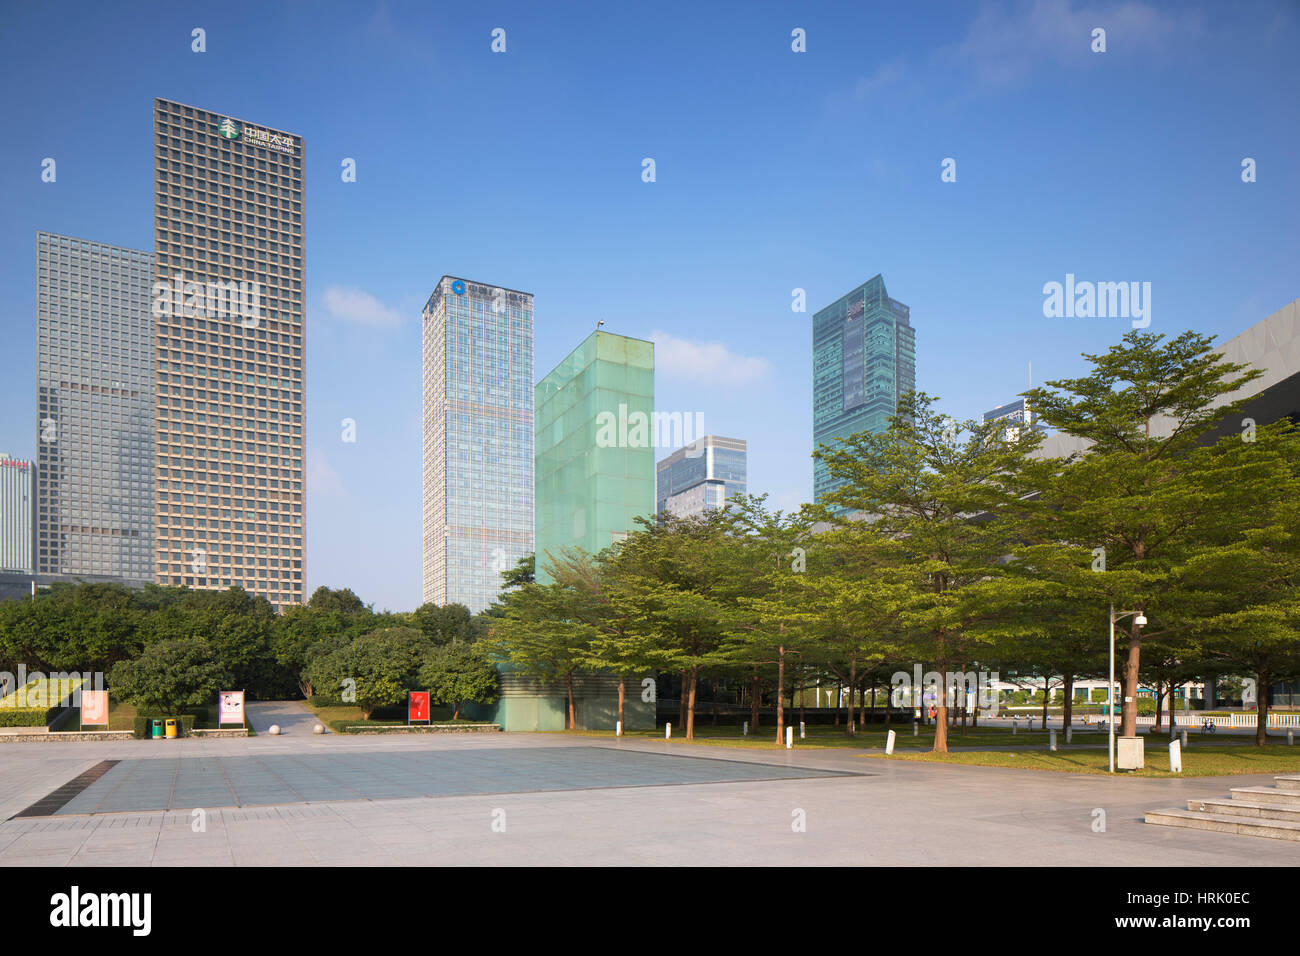 Skyscrapers and Civic Square, Futian, Shenzhen, Guangdong, China - Stock Image